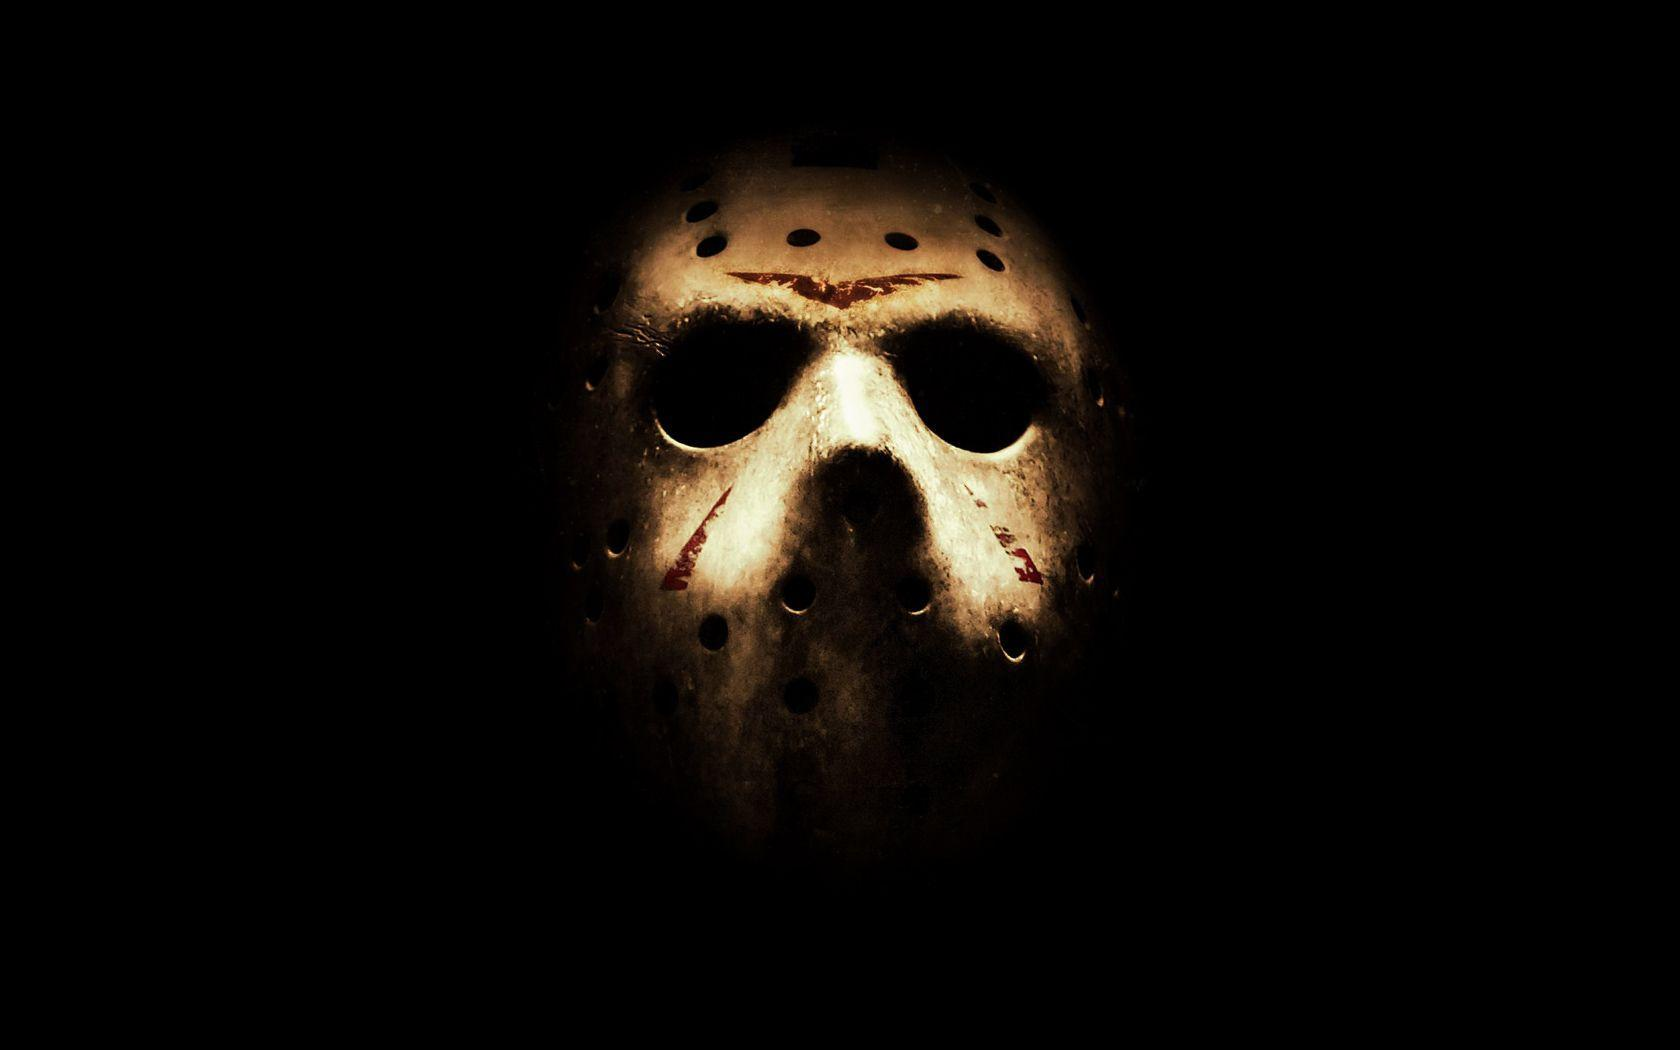 5 Friday The 13th HD Wallpapers | Backgrounds - Wallpaper Abyss